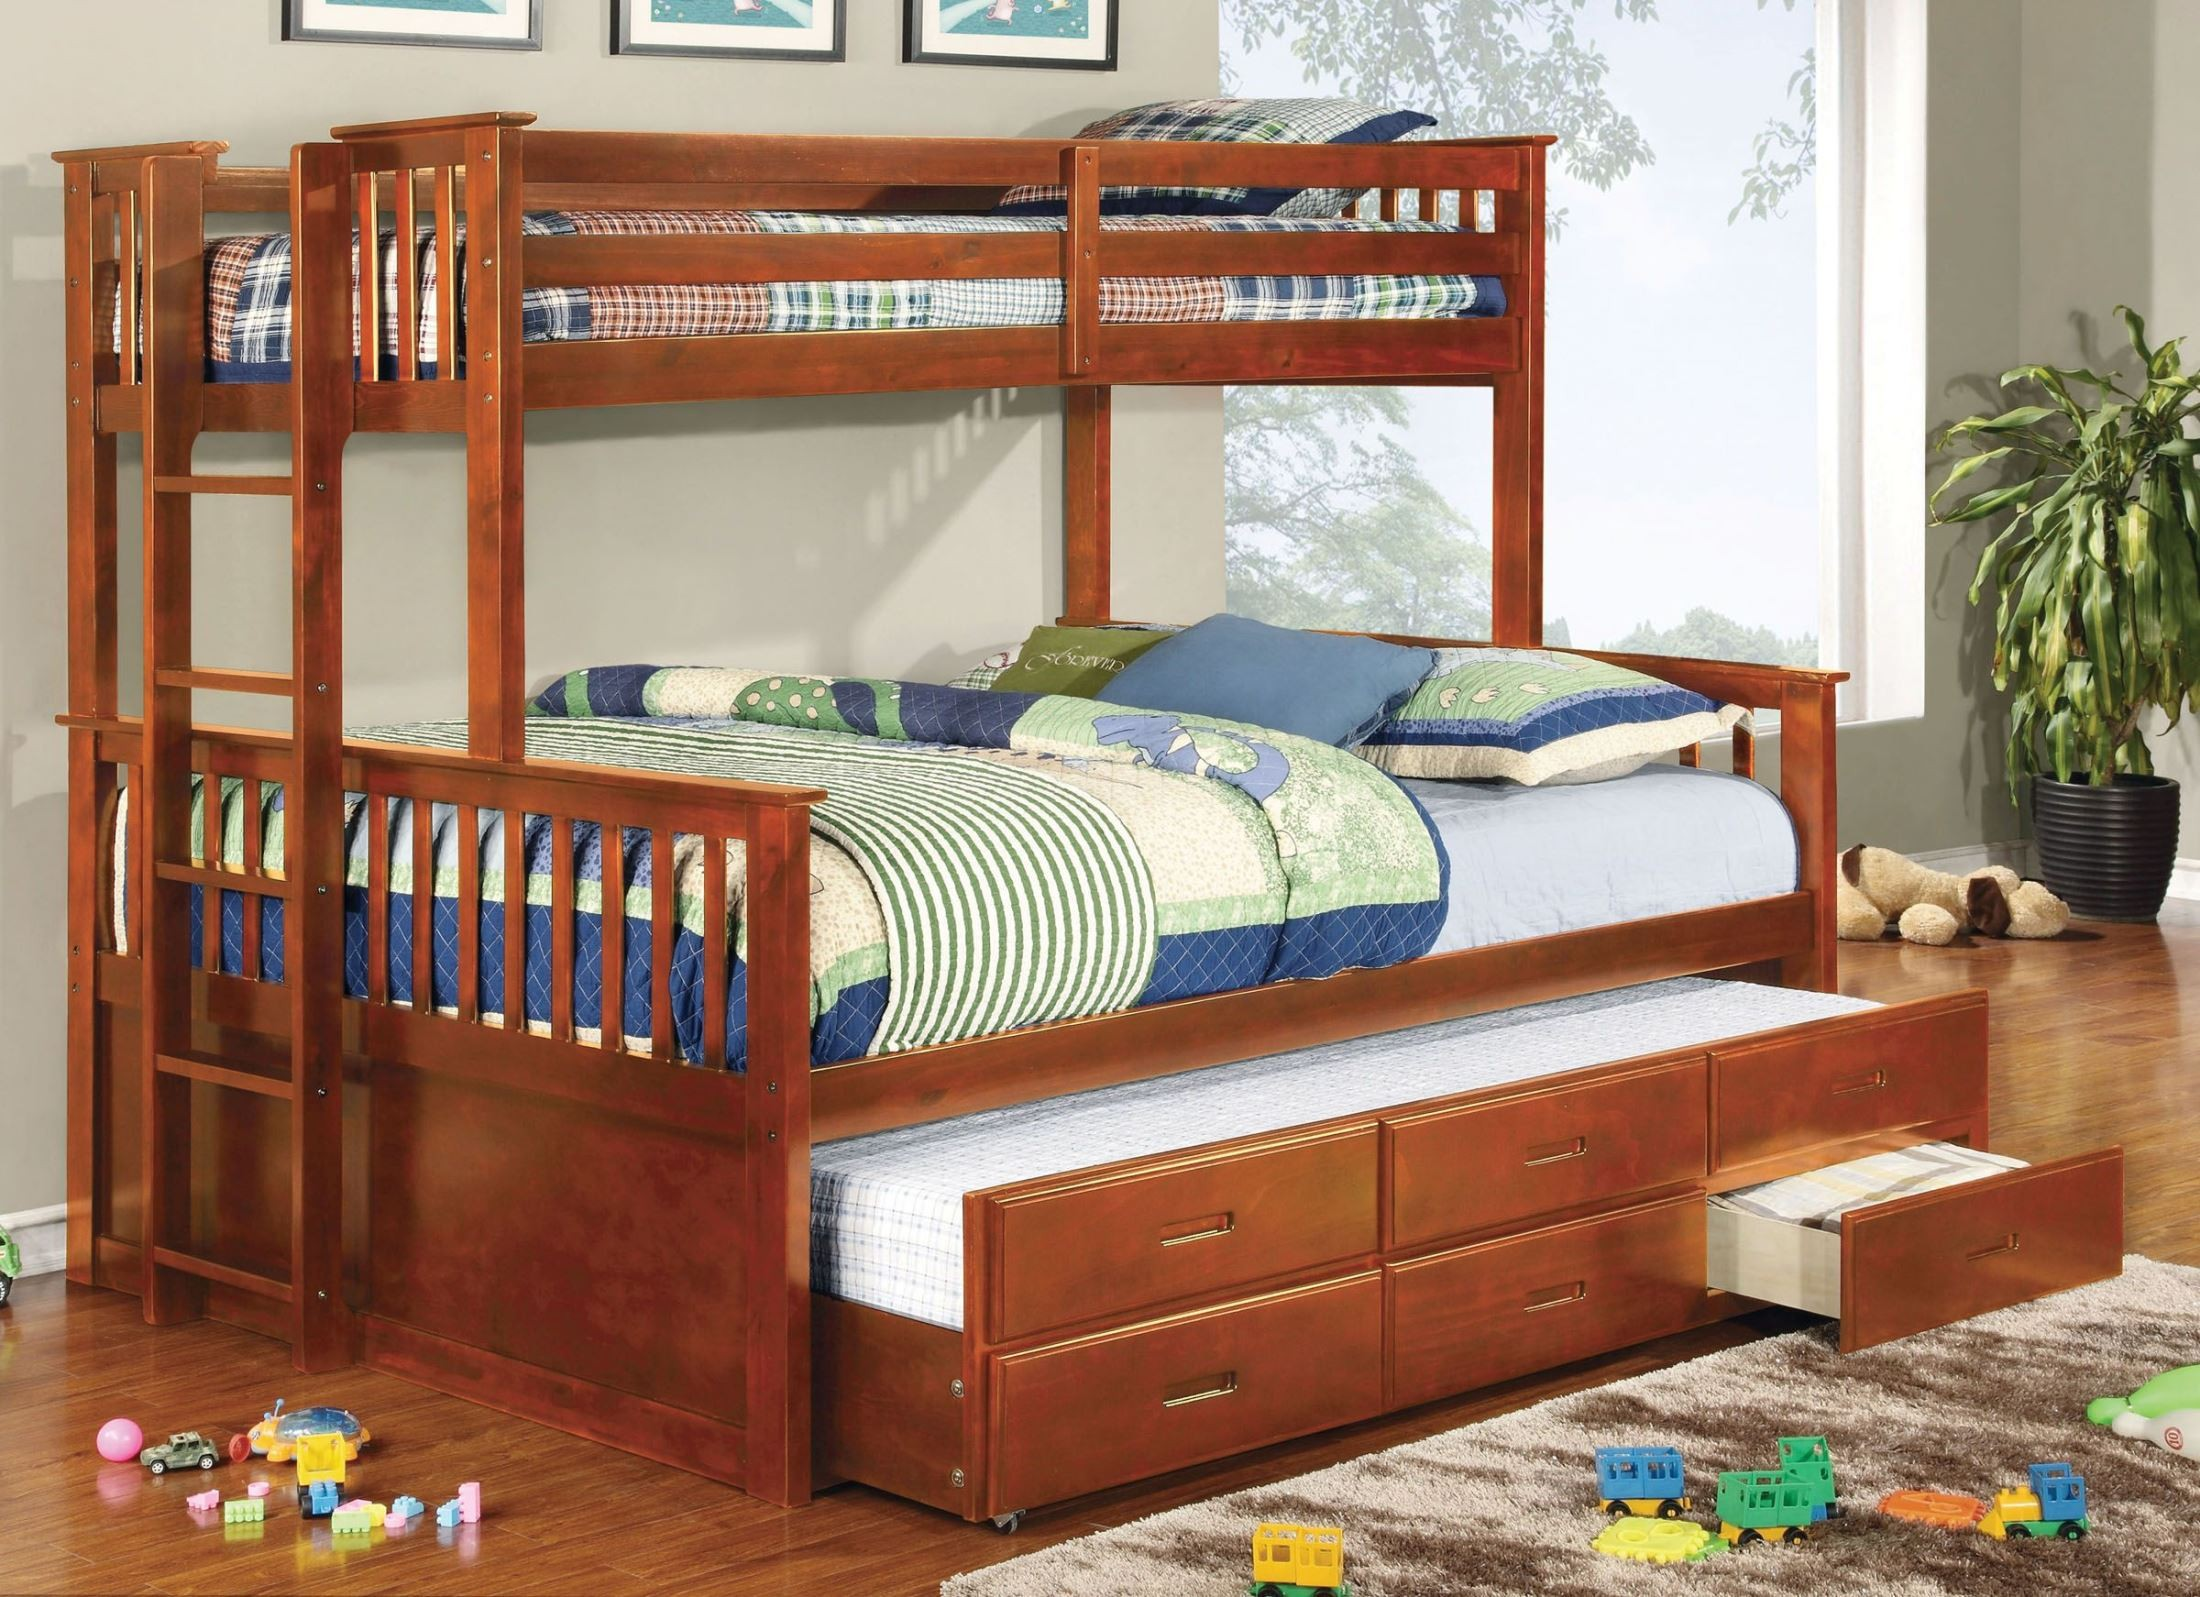 University oak extra long twin over queen bunk bed from 2 twin beds make a queen